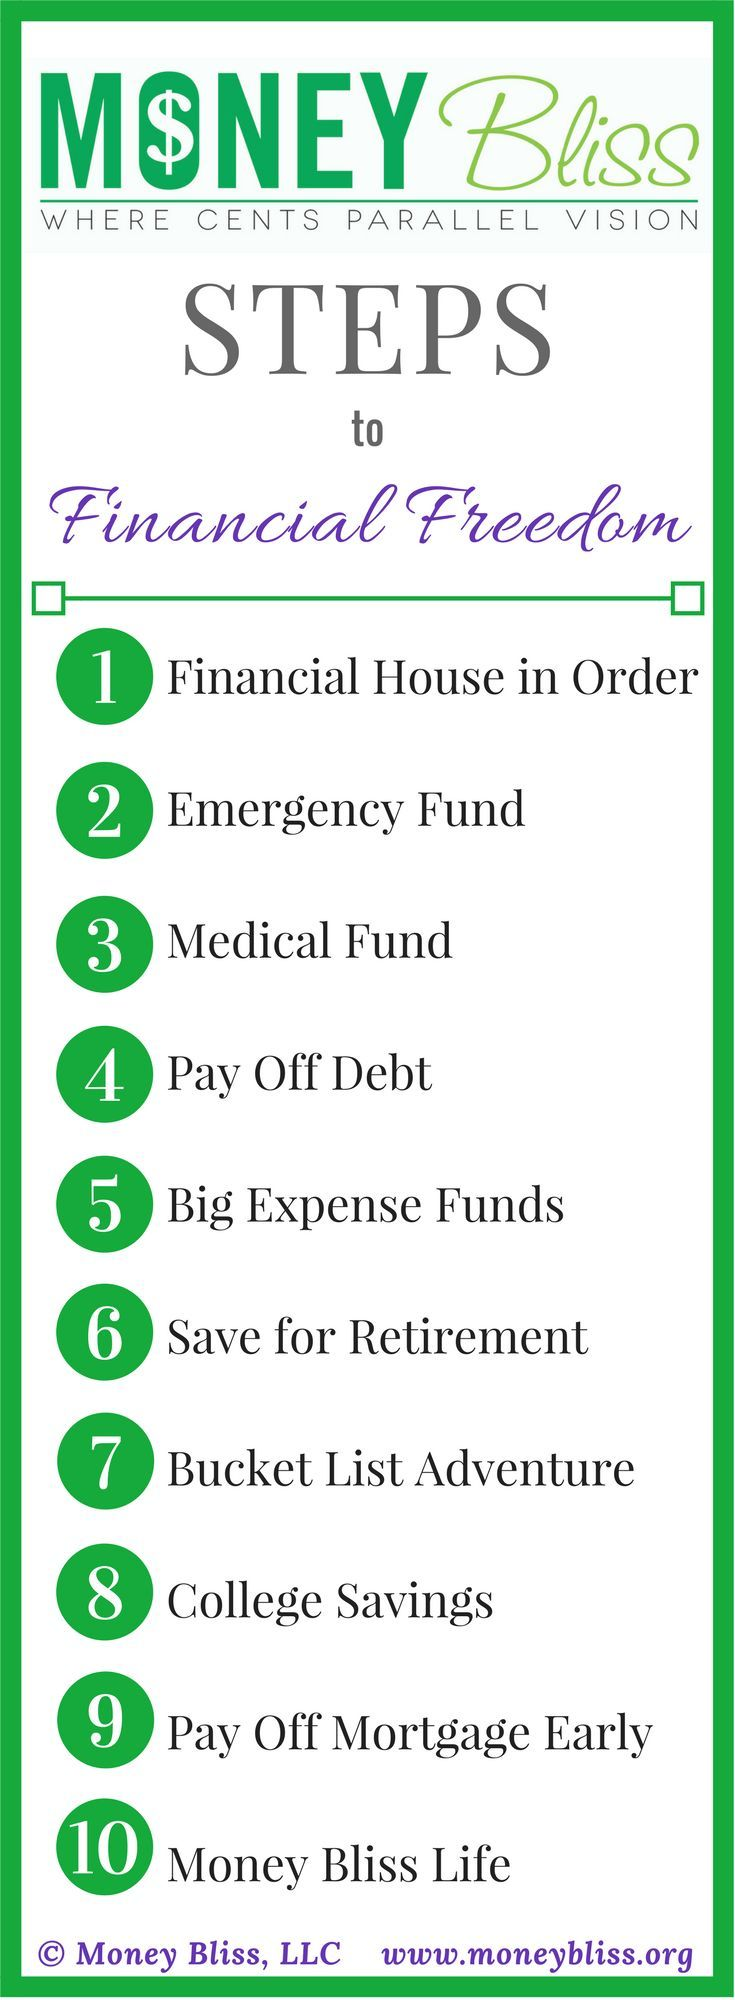 Money Bliss Steps to Financial Freedom, Life debt free. Simple steps for life. Money saving tips. Alternative to Dave Ramsey baby steps or Tony Robbins or Suze Orman. Personal Finance. Money Bliss Checklist. Printable. Budget.